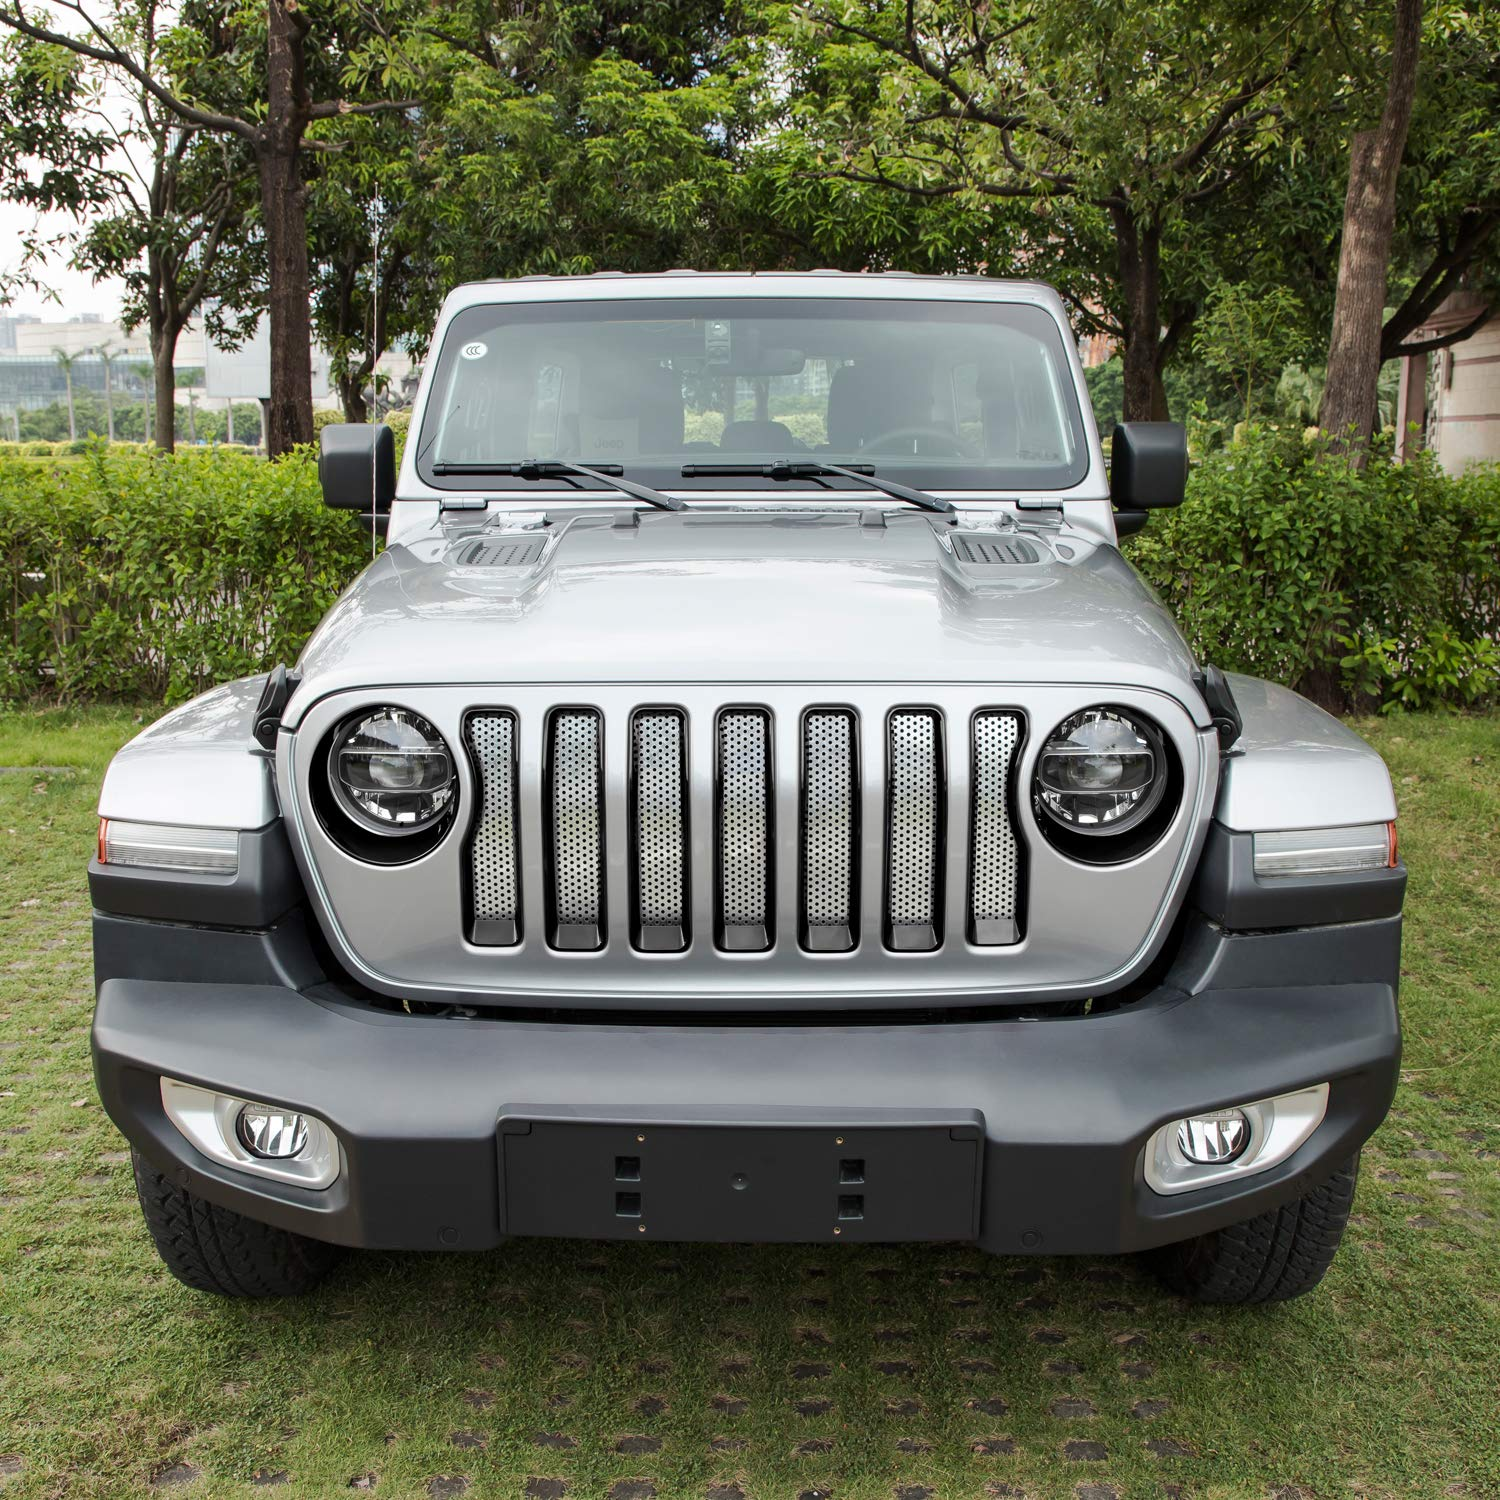 Sunluway Front Grille Trim Inserts Grill Cover Headlight Turn Light Cover Trim /& Door Hinge Cover 17 Pcs Black Protection Accessories for 2018 2019 Jeep Wrangler JL JLU Sport//Sports